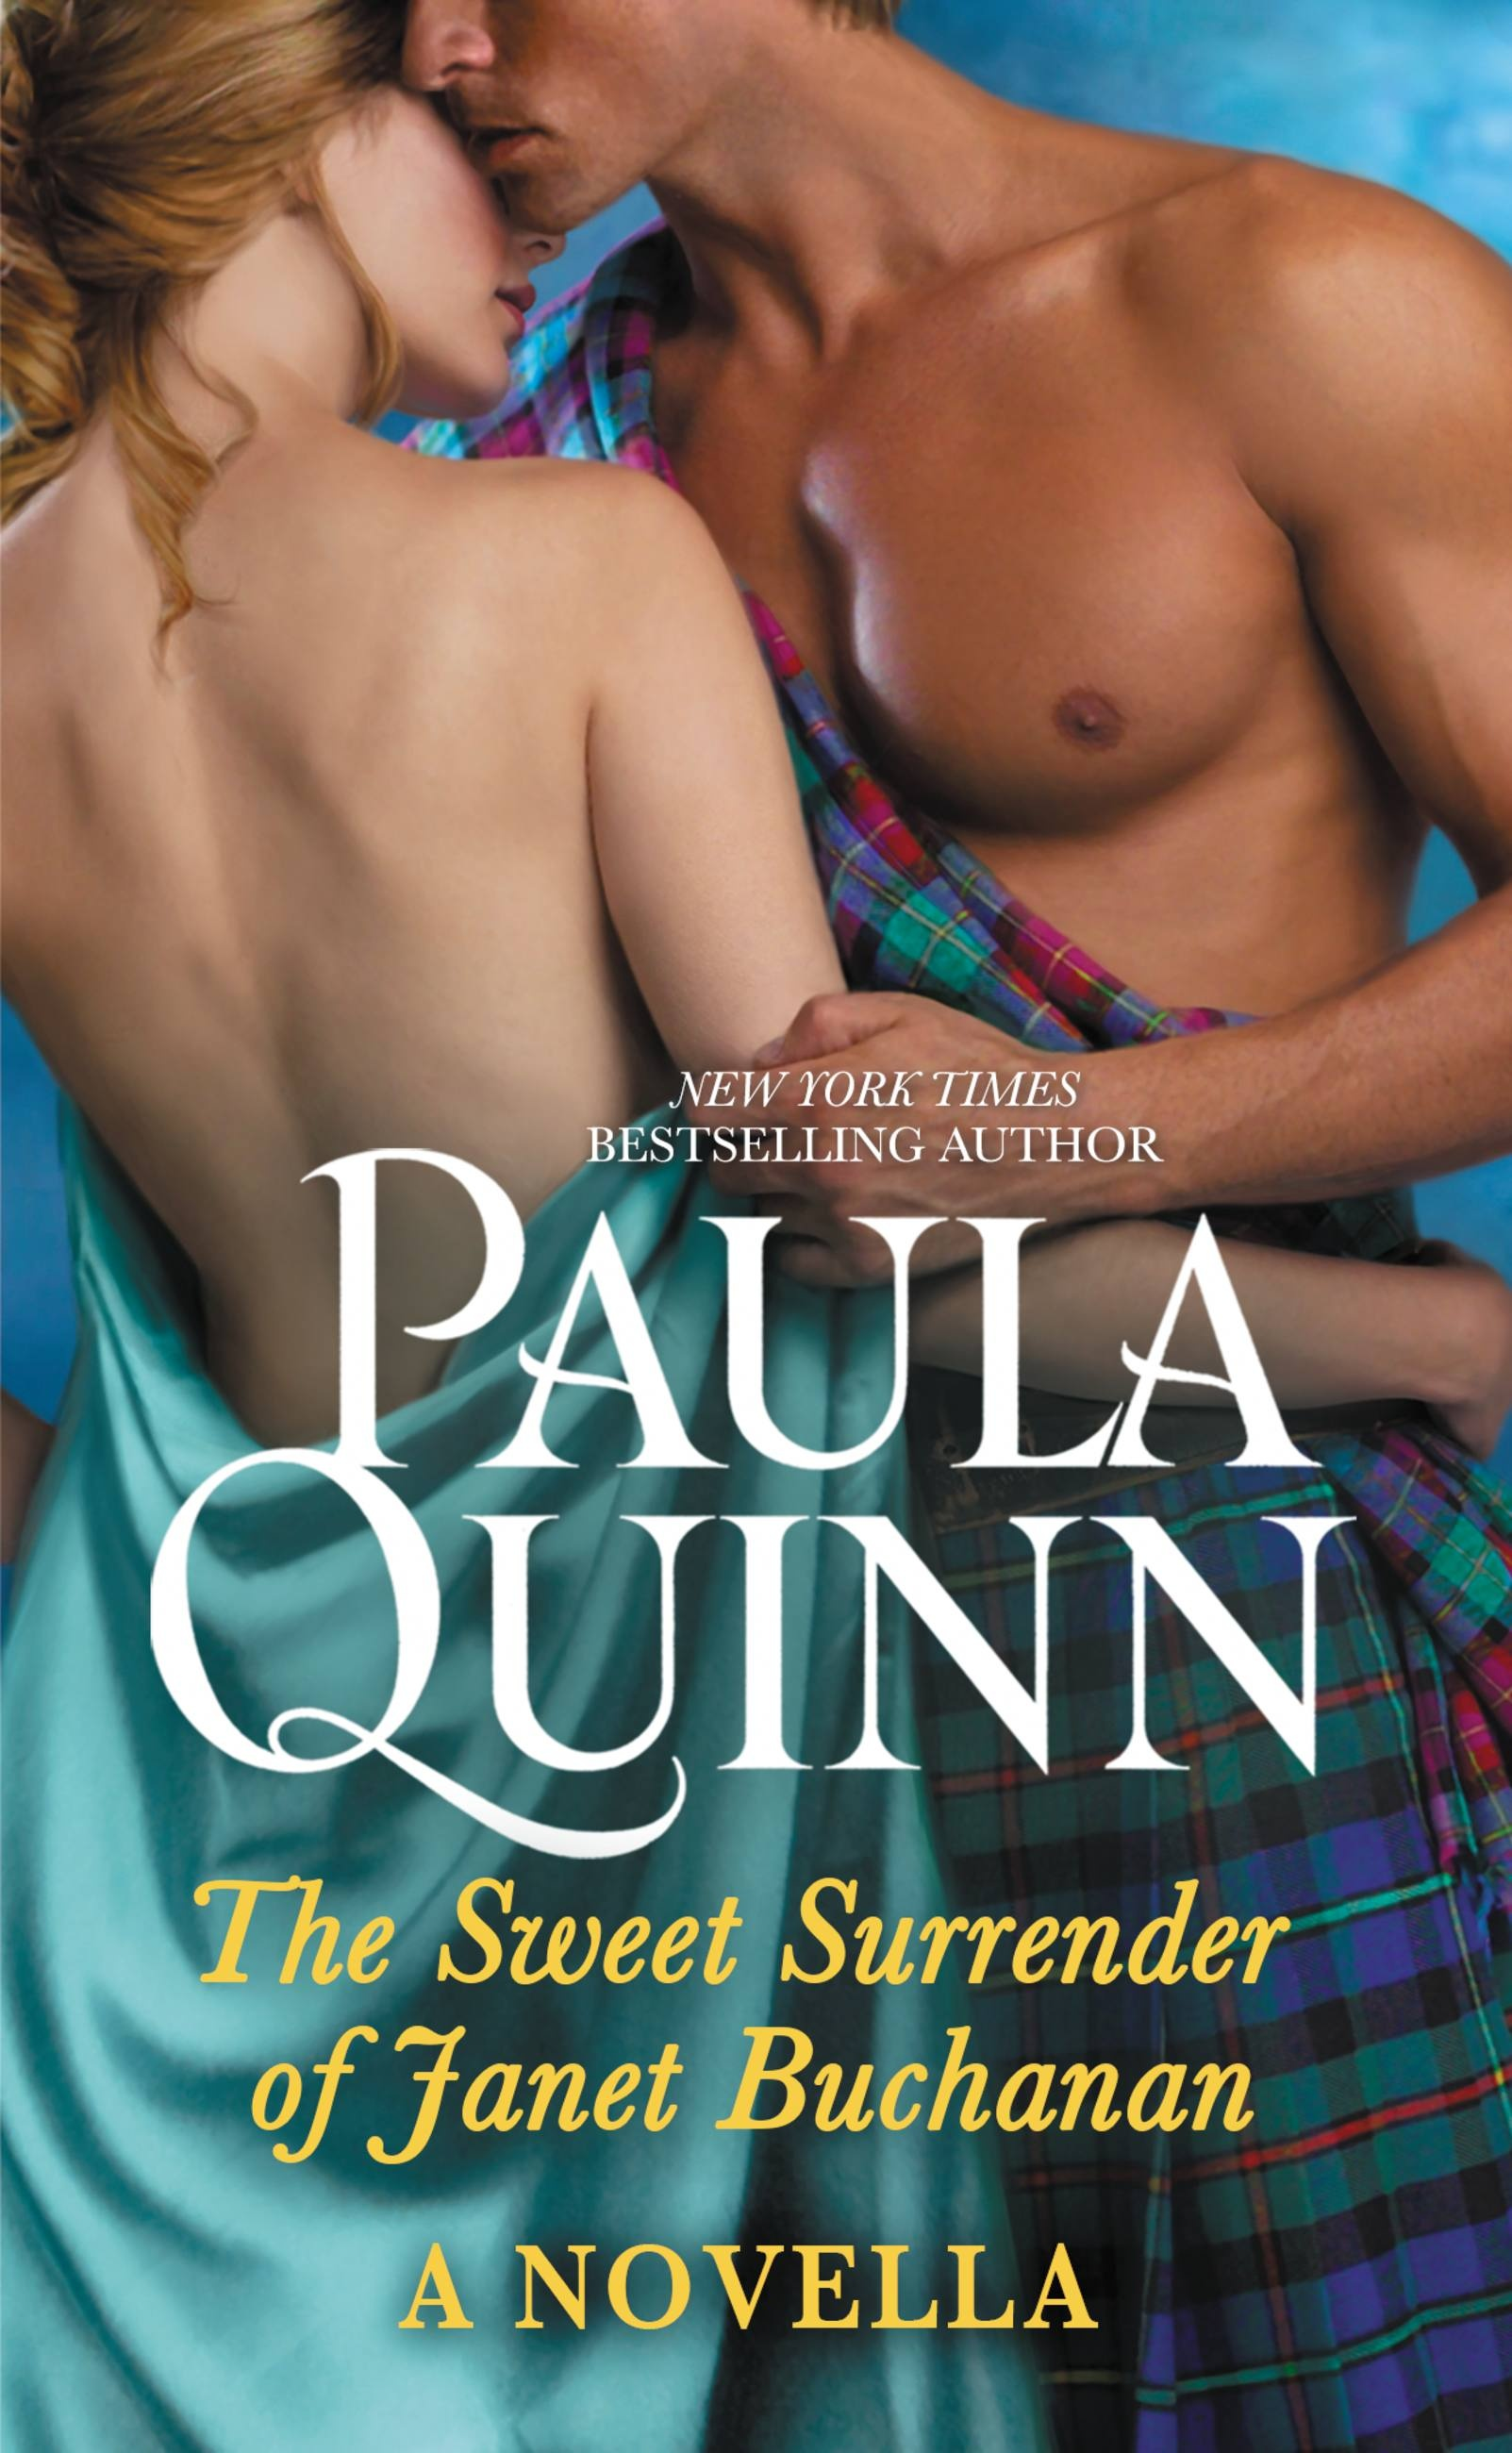 The Sweet Surrender of Janet Buchanan